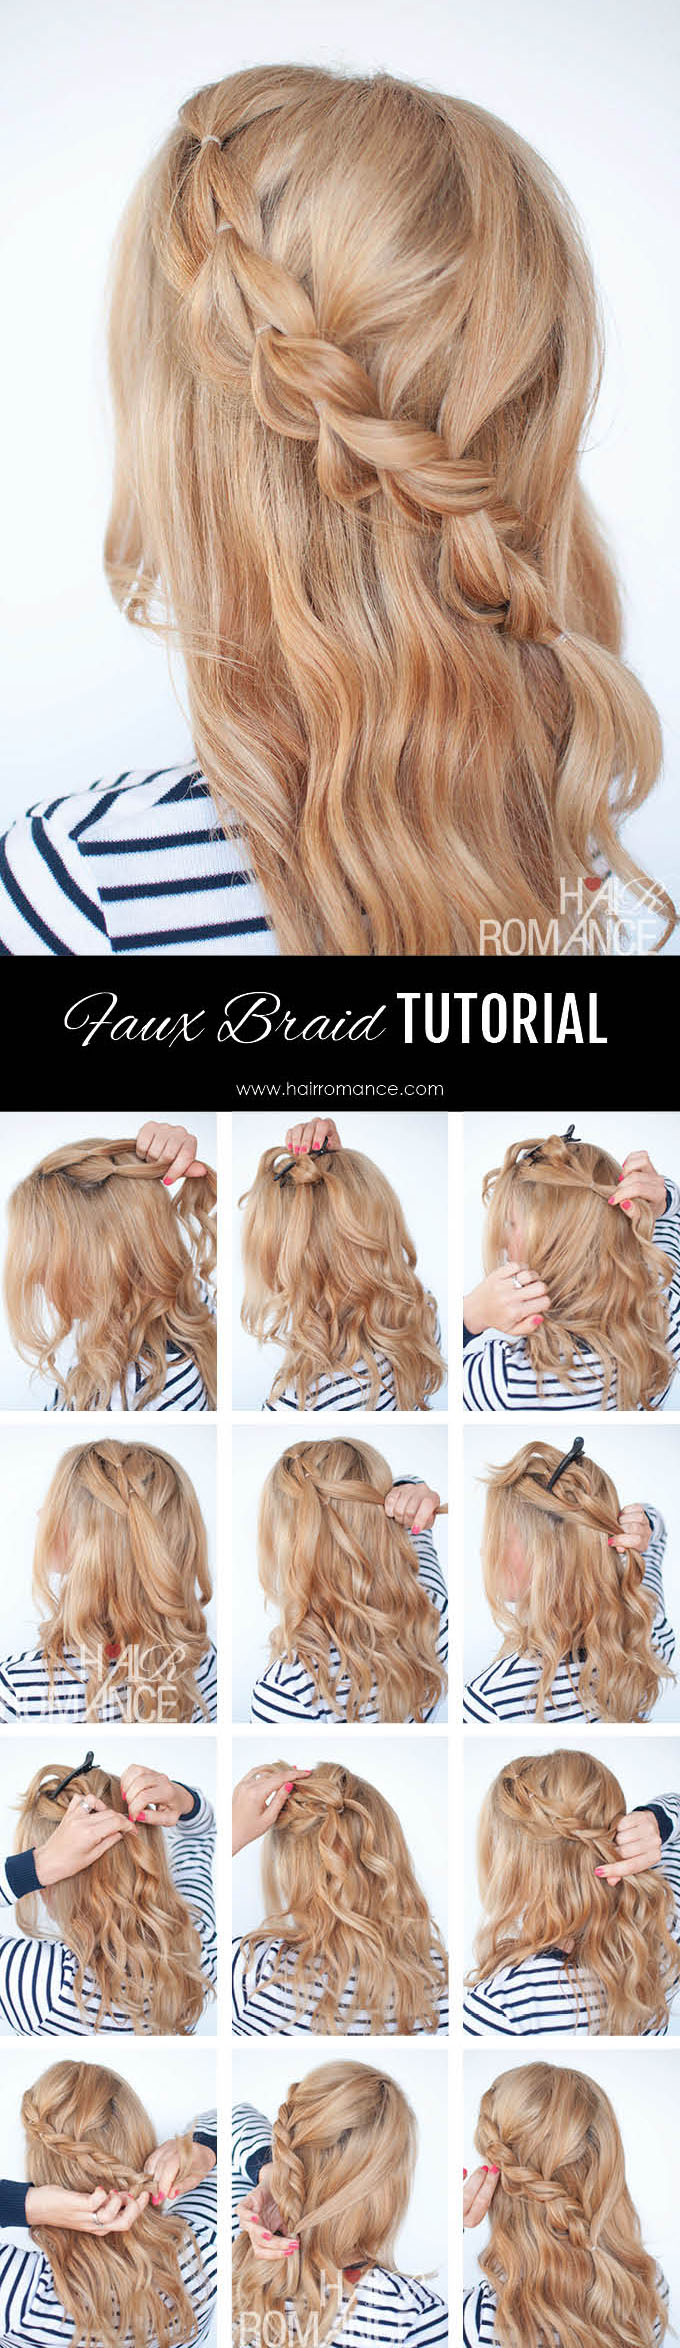 The No Braid Braid 5 Pull Through Braid Tutorials Hair Romance